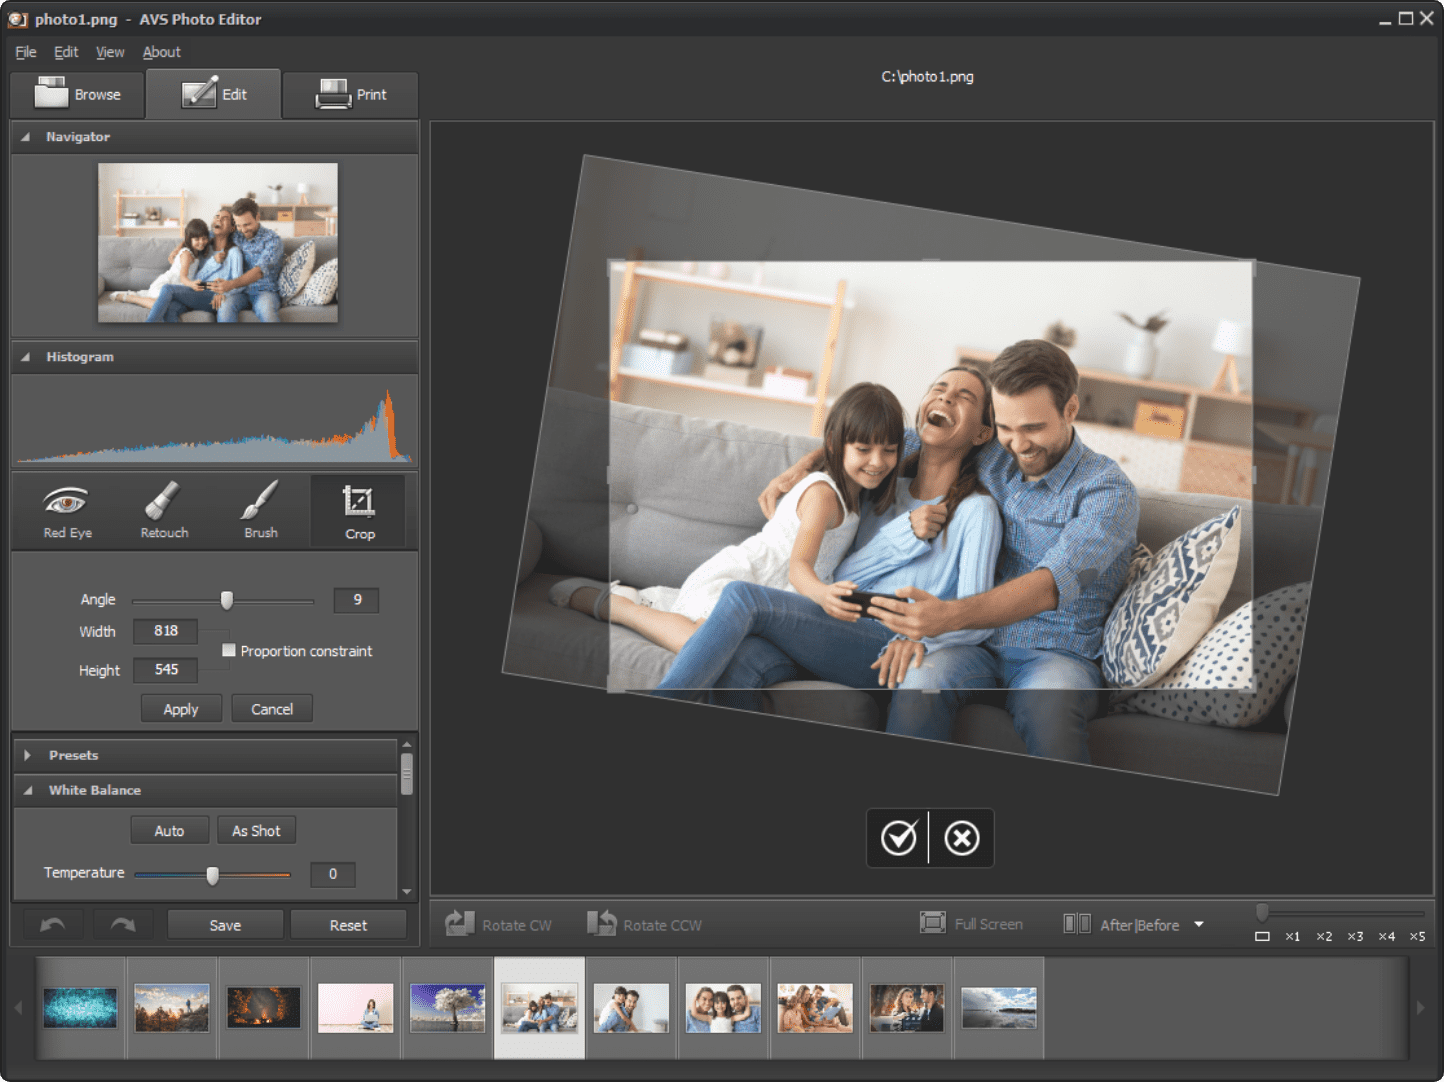 Avs Free Photo Editor Is A Free Photo Editing Software